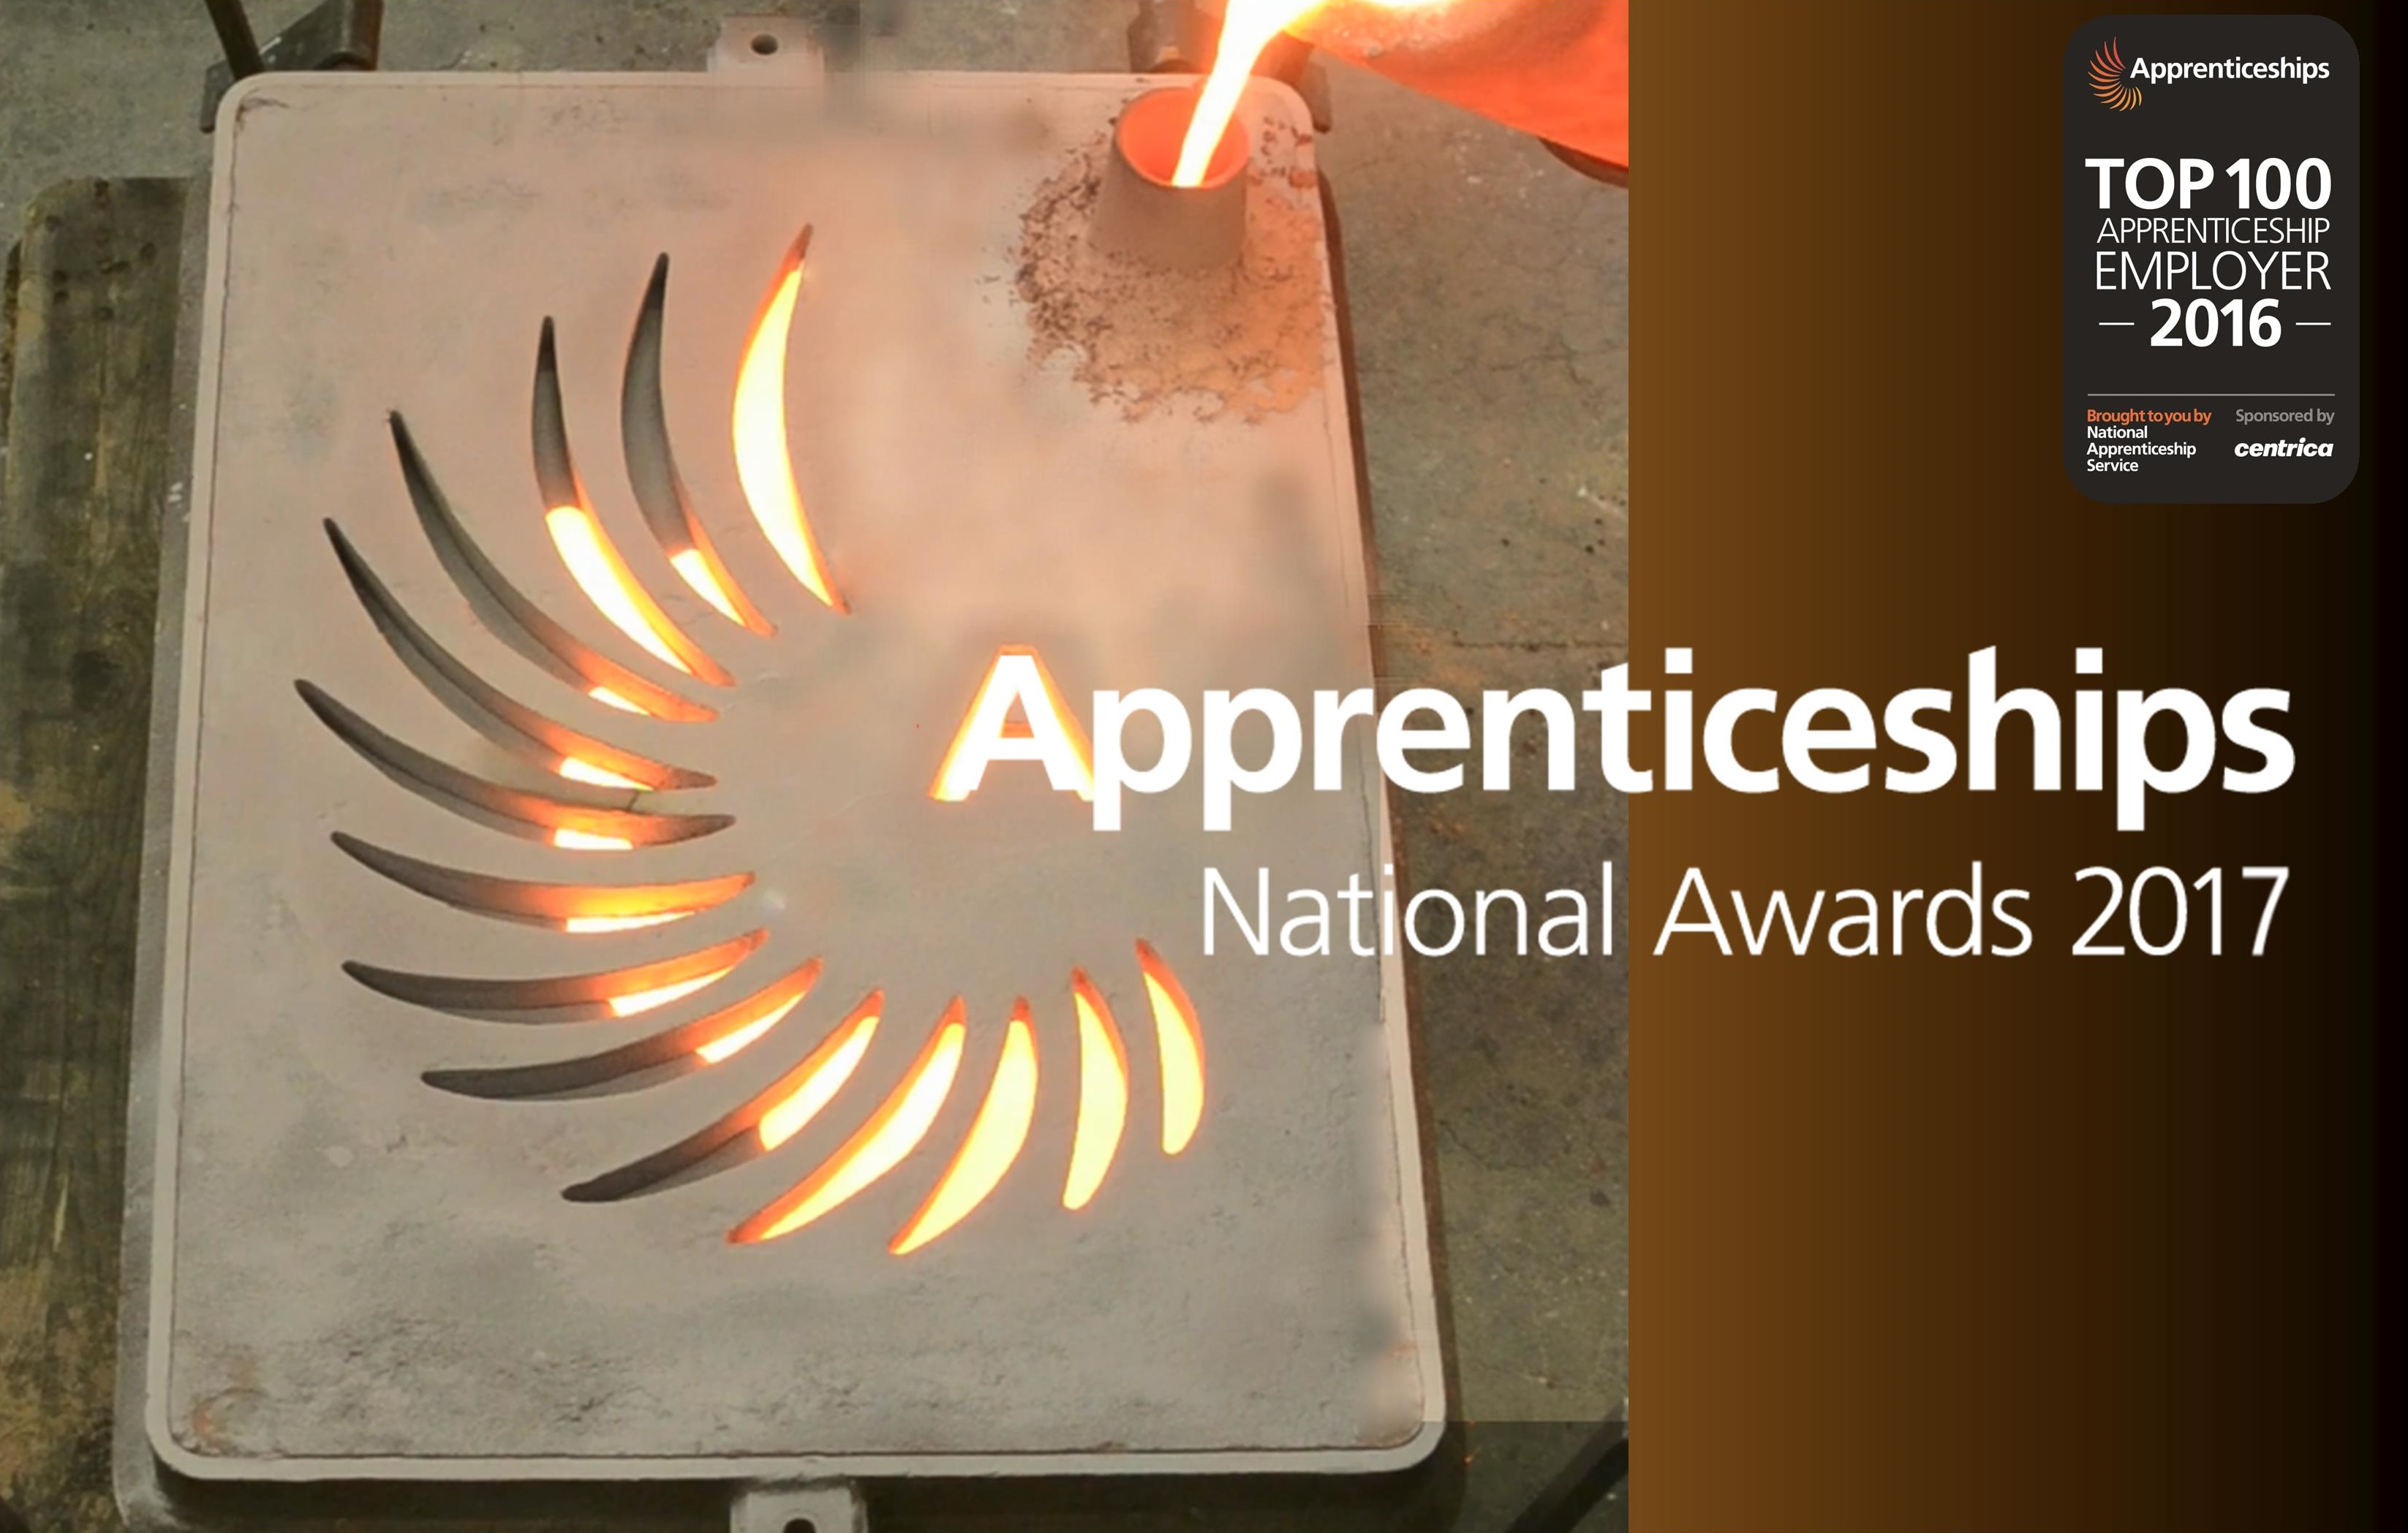 Natioanl_Apprenticeship_Awards_MNPEL_glowing_A_and_Top100_logosAugust_2017.jpg